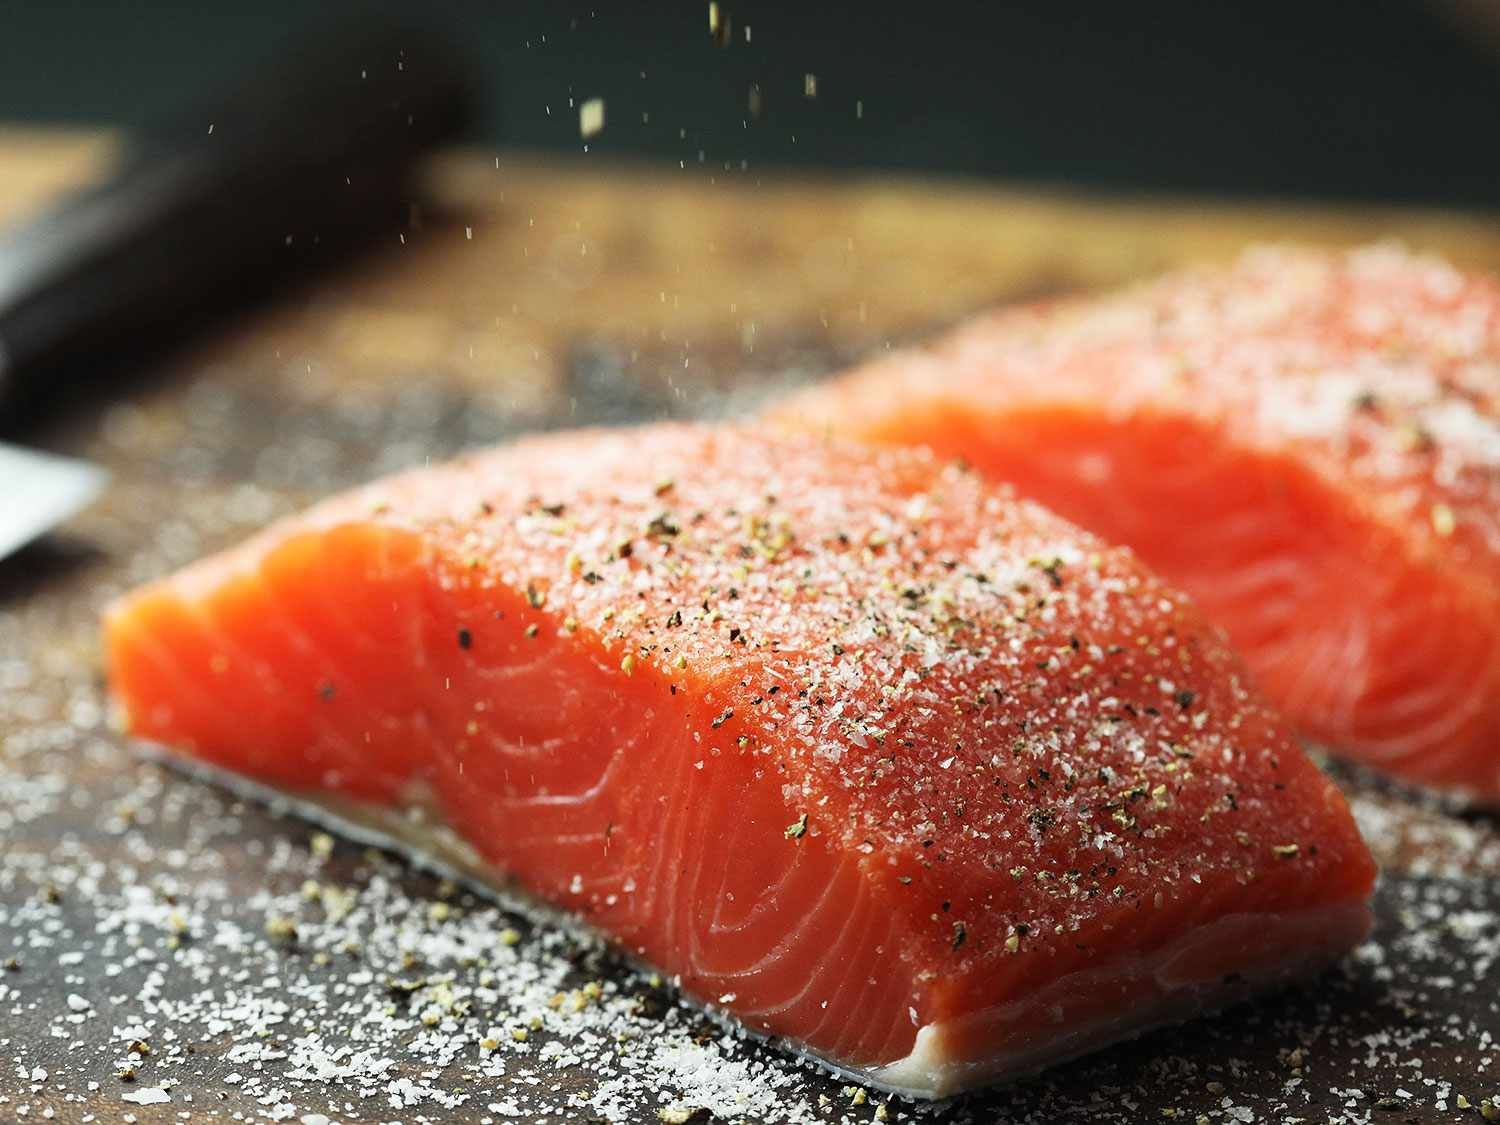 Seasoning two skin-on salmon fillets with salt and pepper on wooden cutting board.